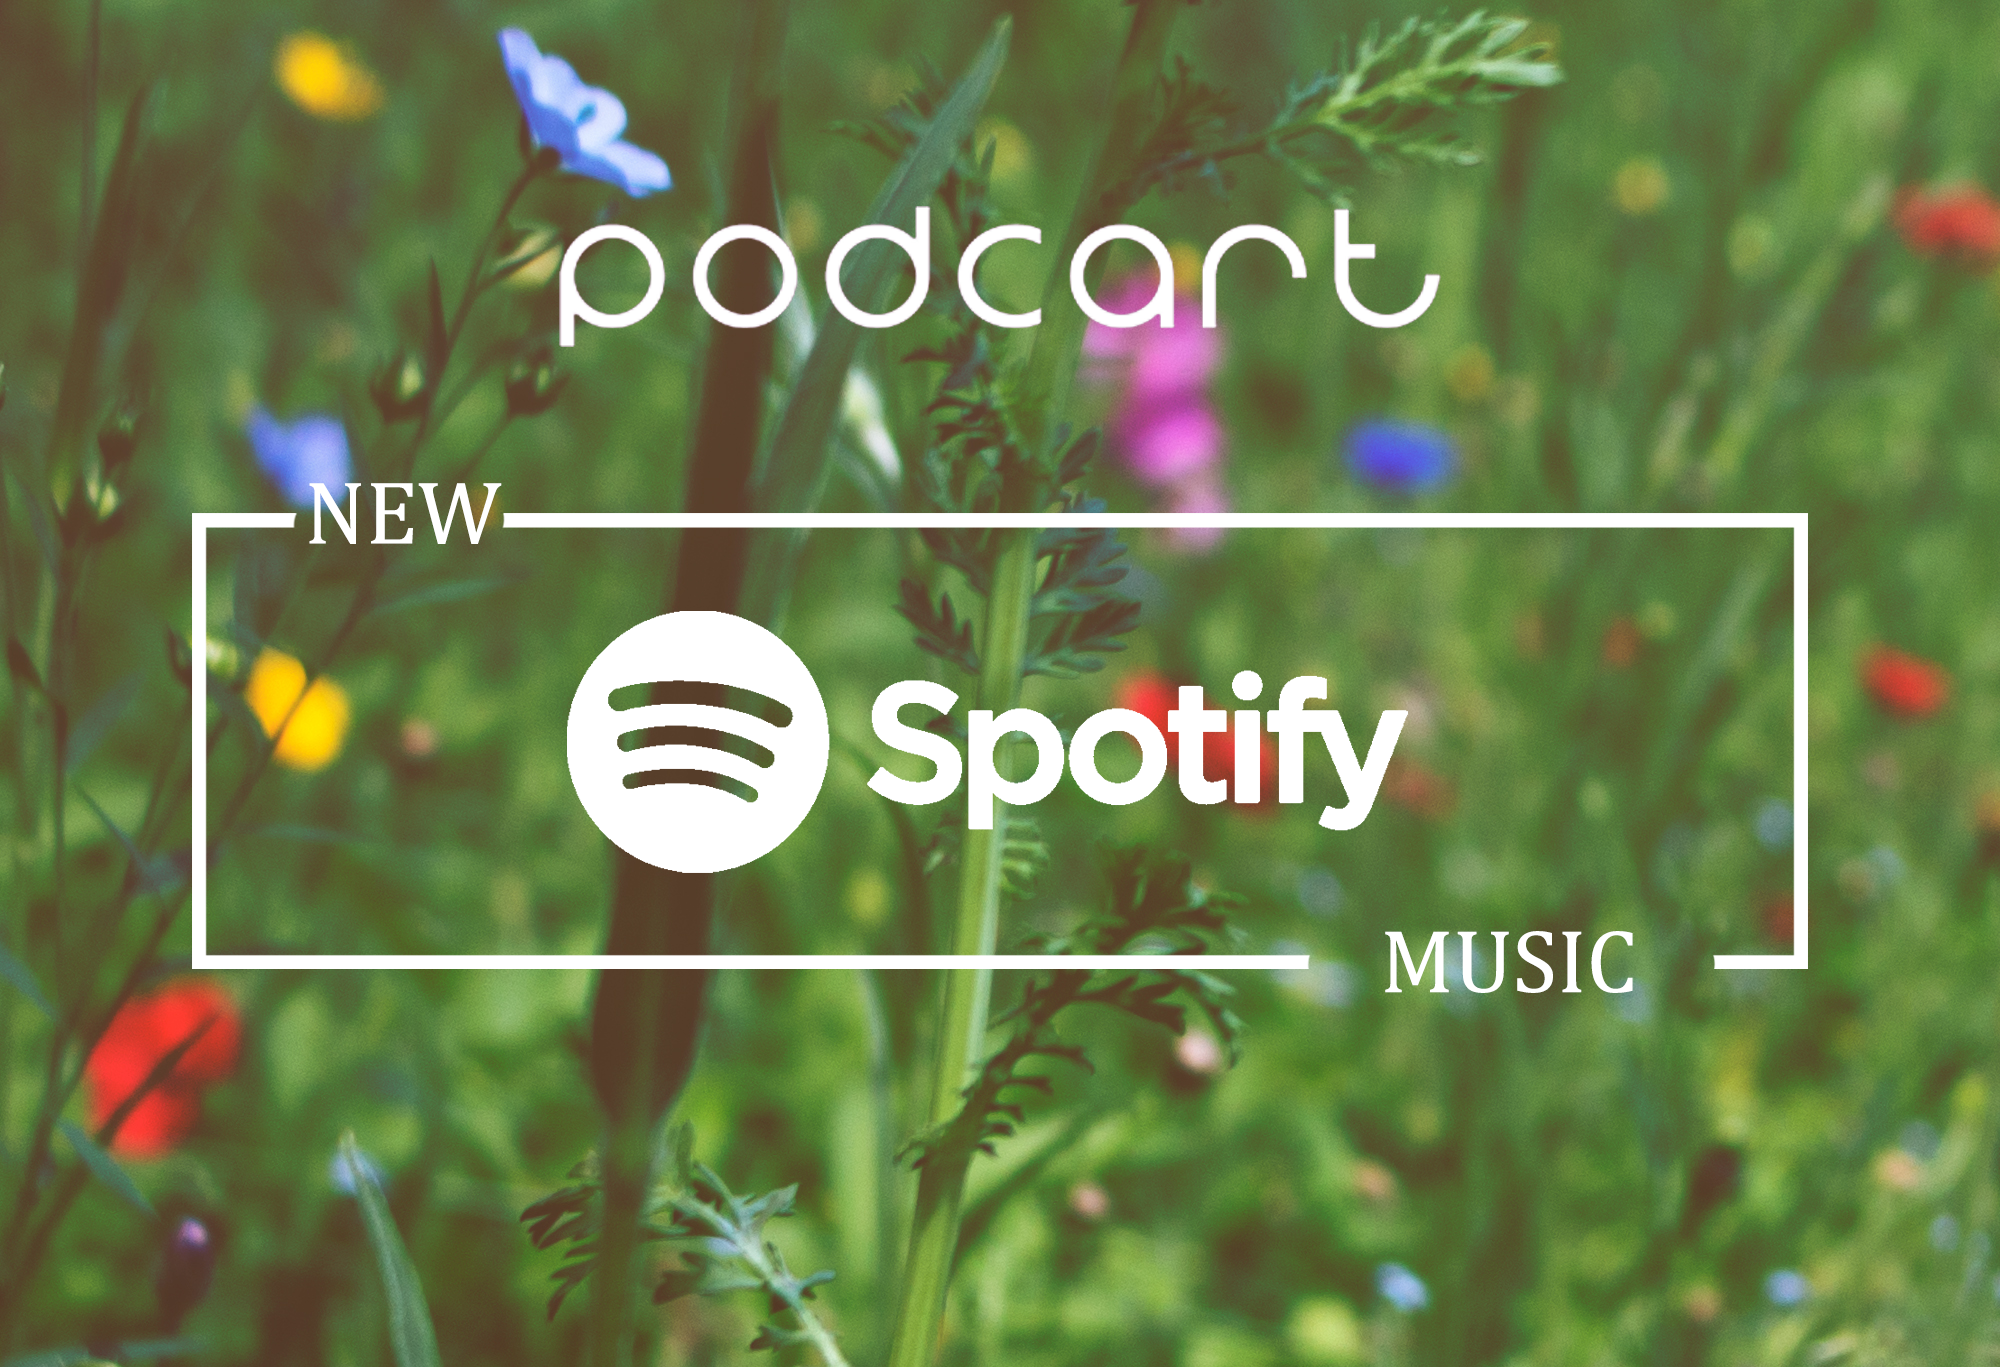 Podcart's Spotify Playlist 21